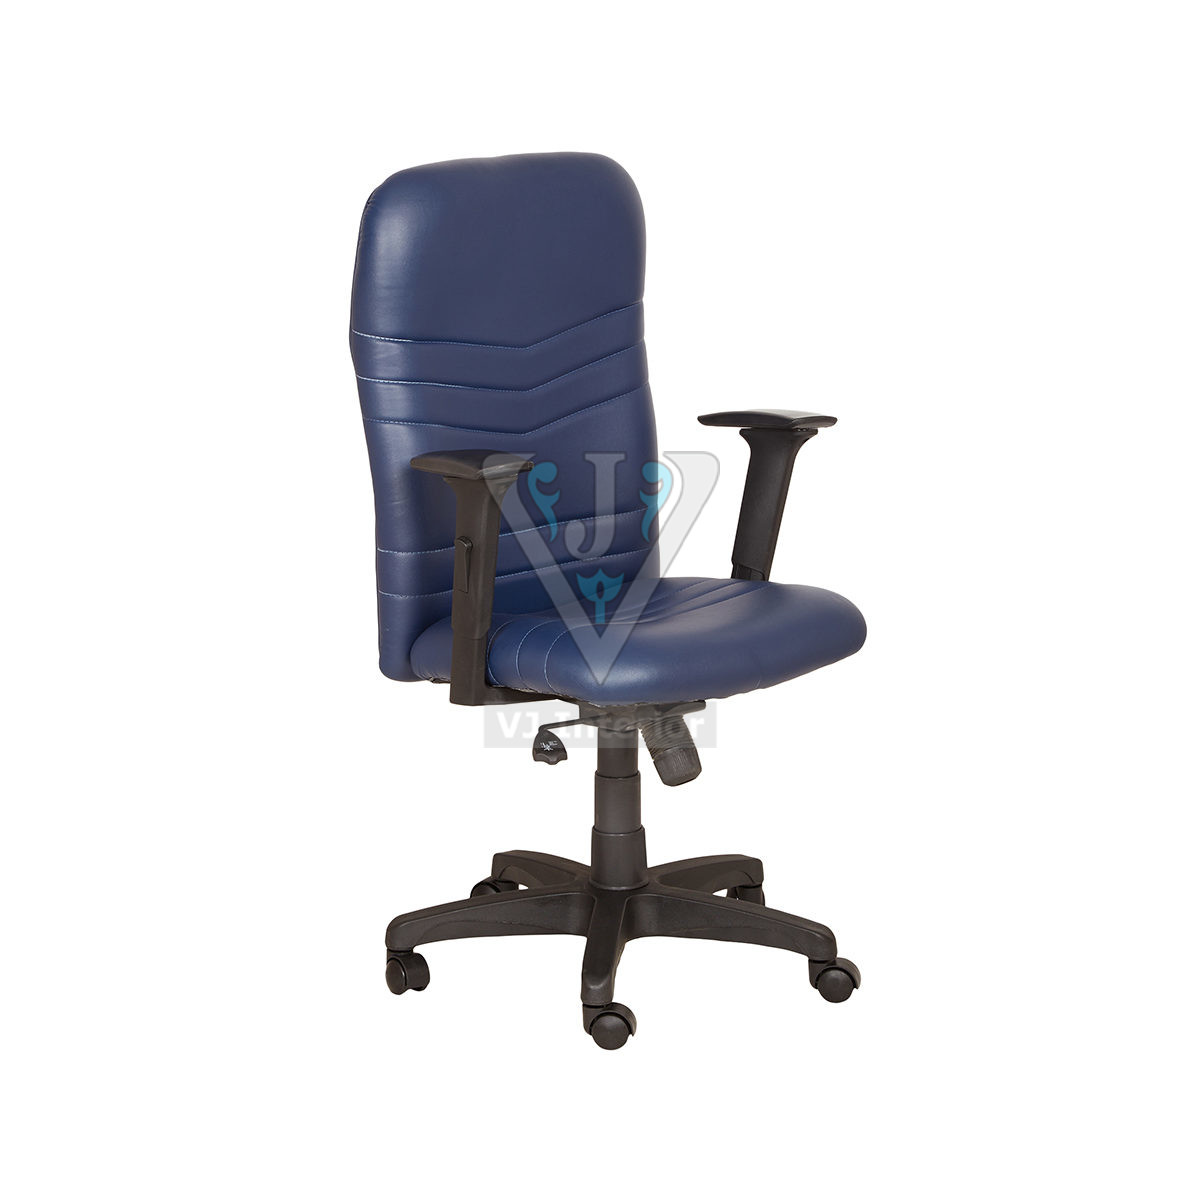 Blue Synthetic Leather Revolving Office Chair